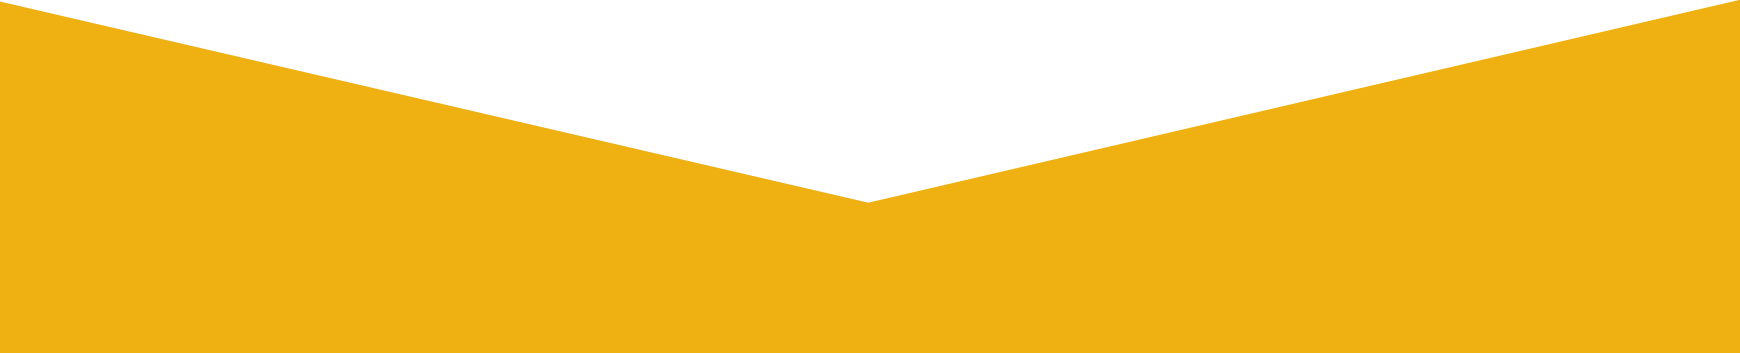 Gold shape png. Downloads university relations western